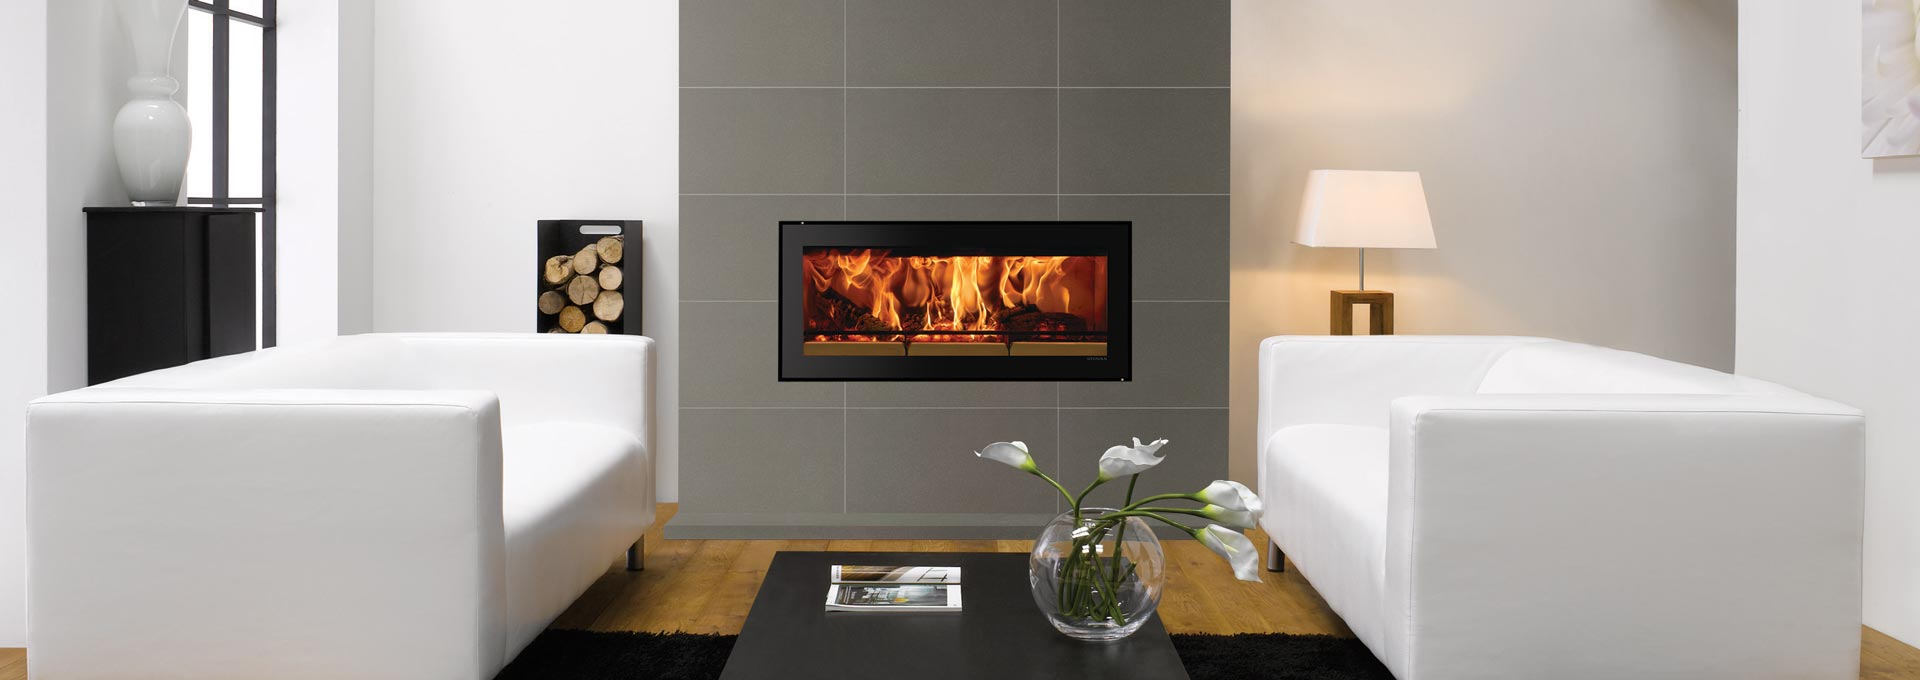 stovax wood fireplaces and freestanding heaters